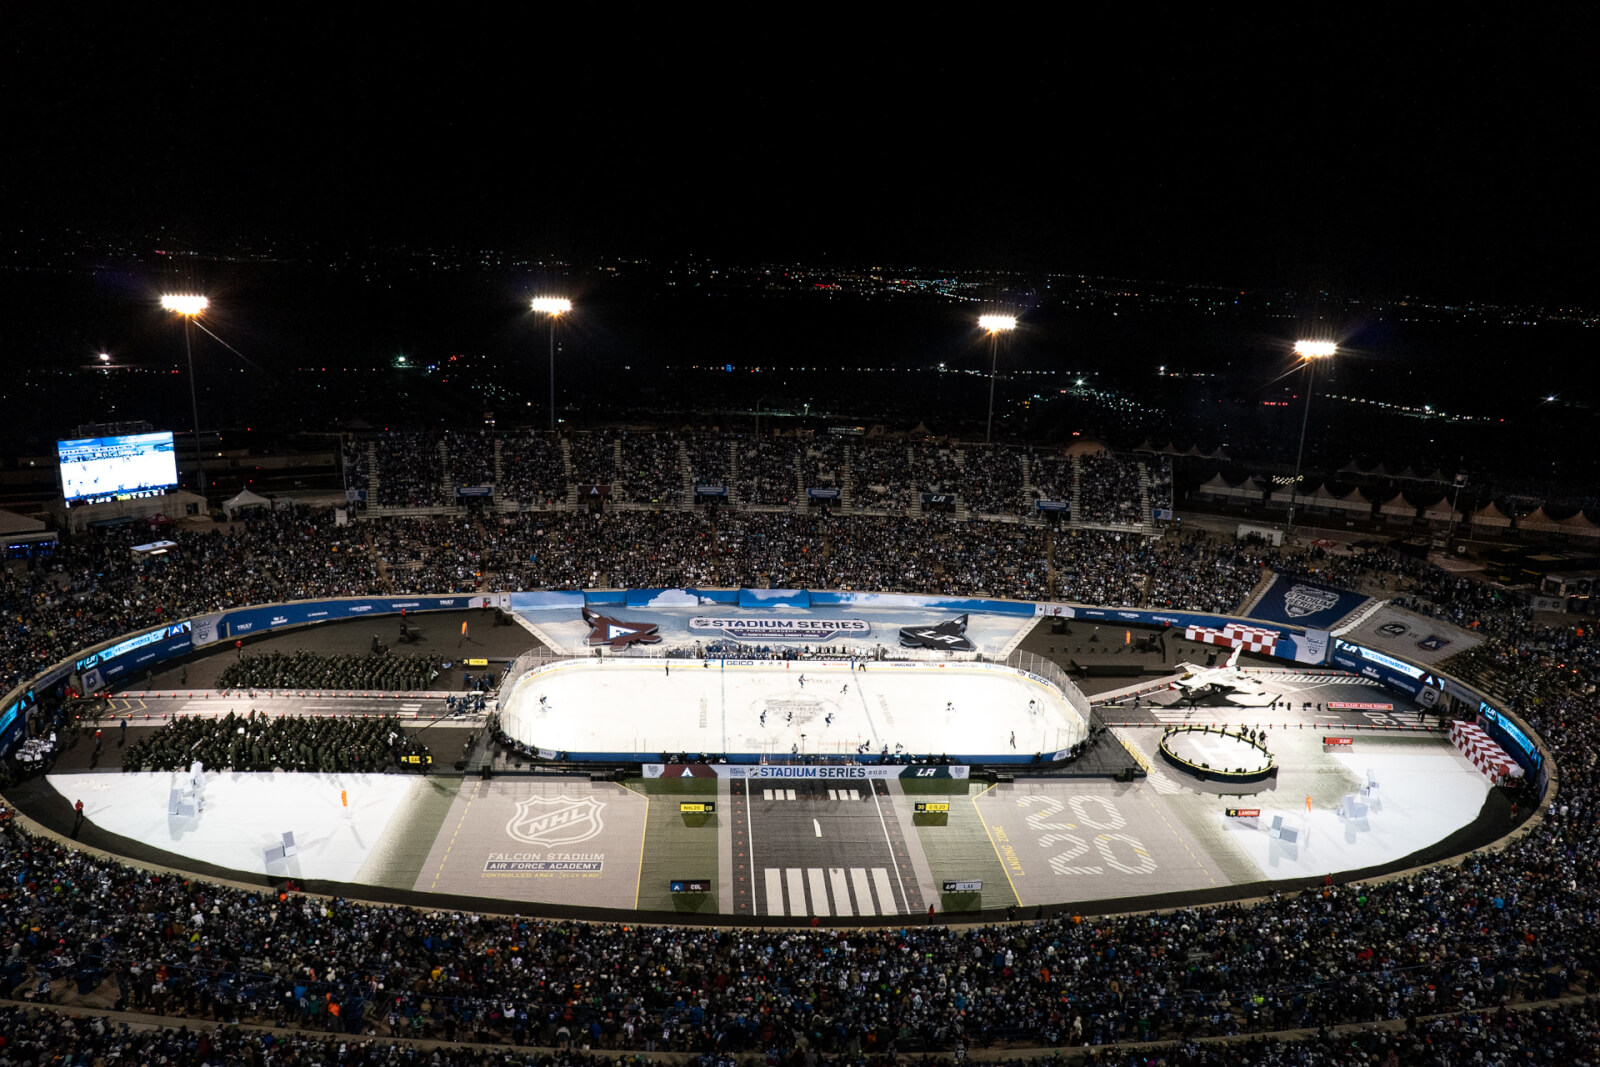 Aerial View of NHL Stadium Series hockey game at US Air Force Academy